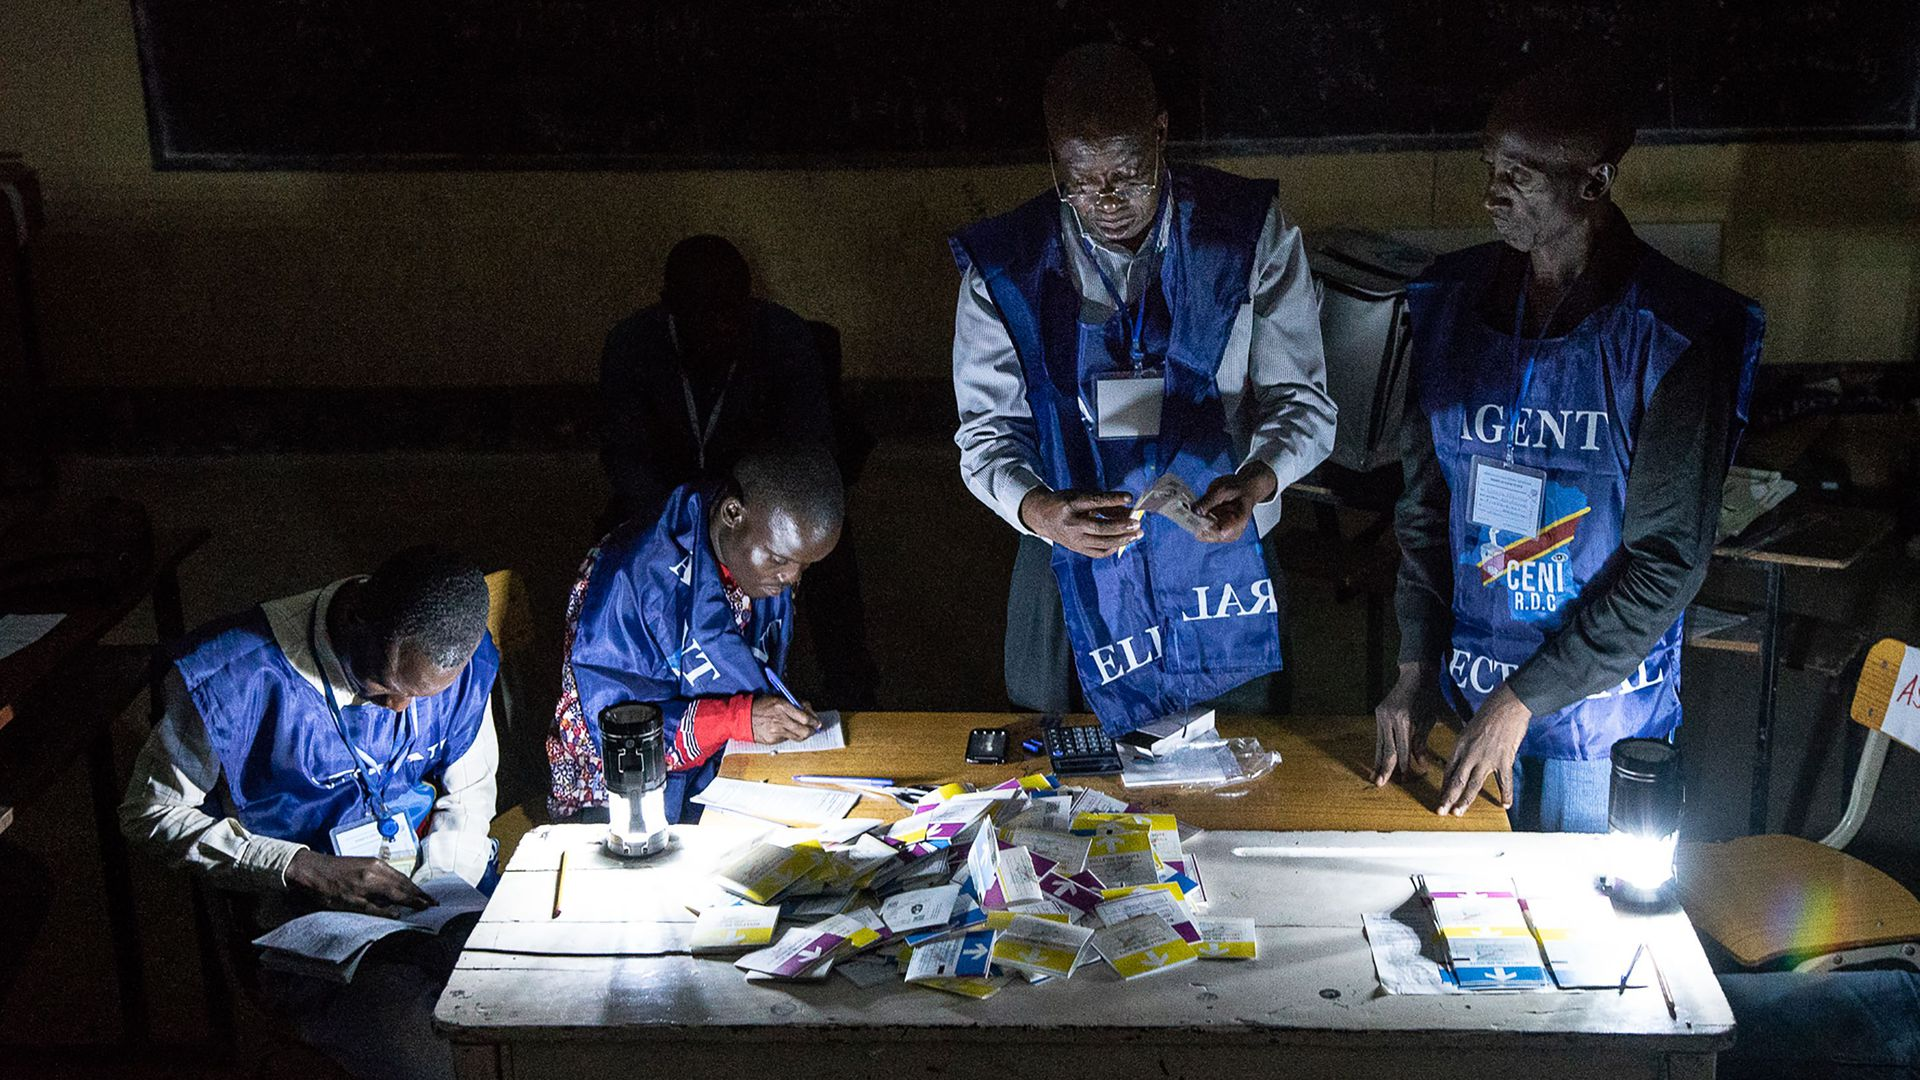 Independent National Electoral Commission (CENI) agents count votes during an electricity cut while watched by observers at Kiwele college in the Democratic Republic of Congo.